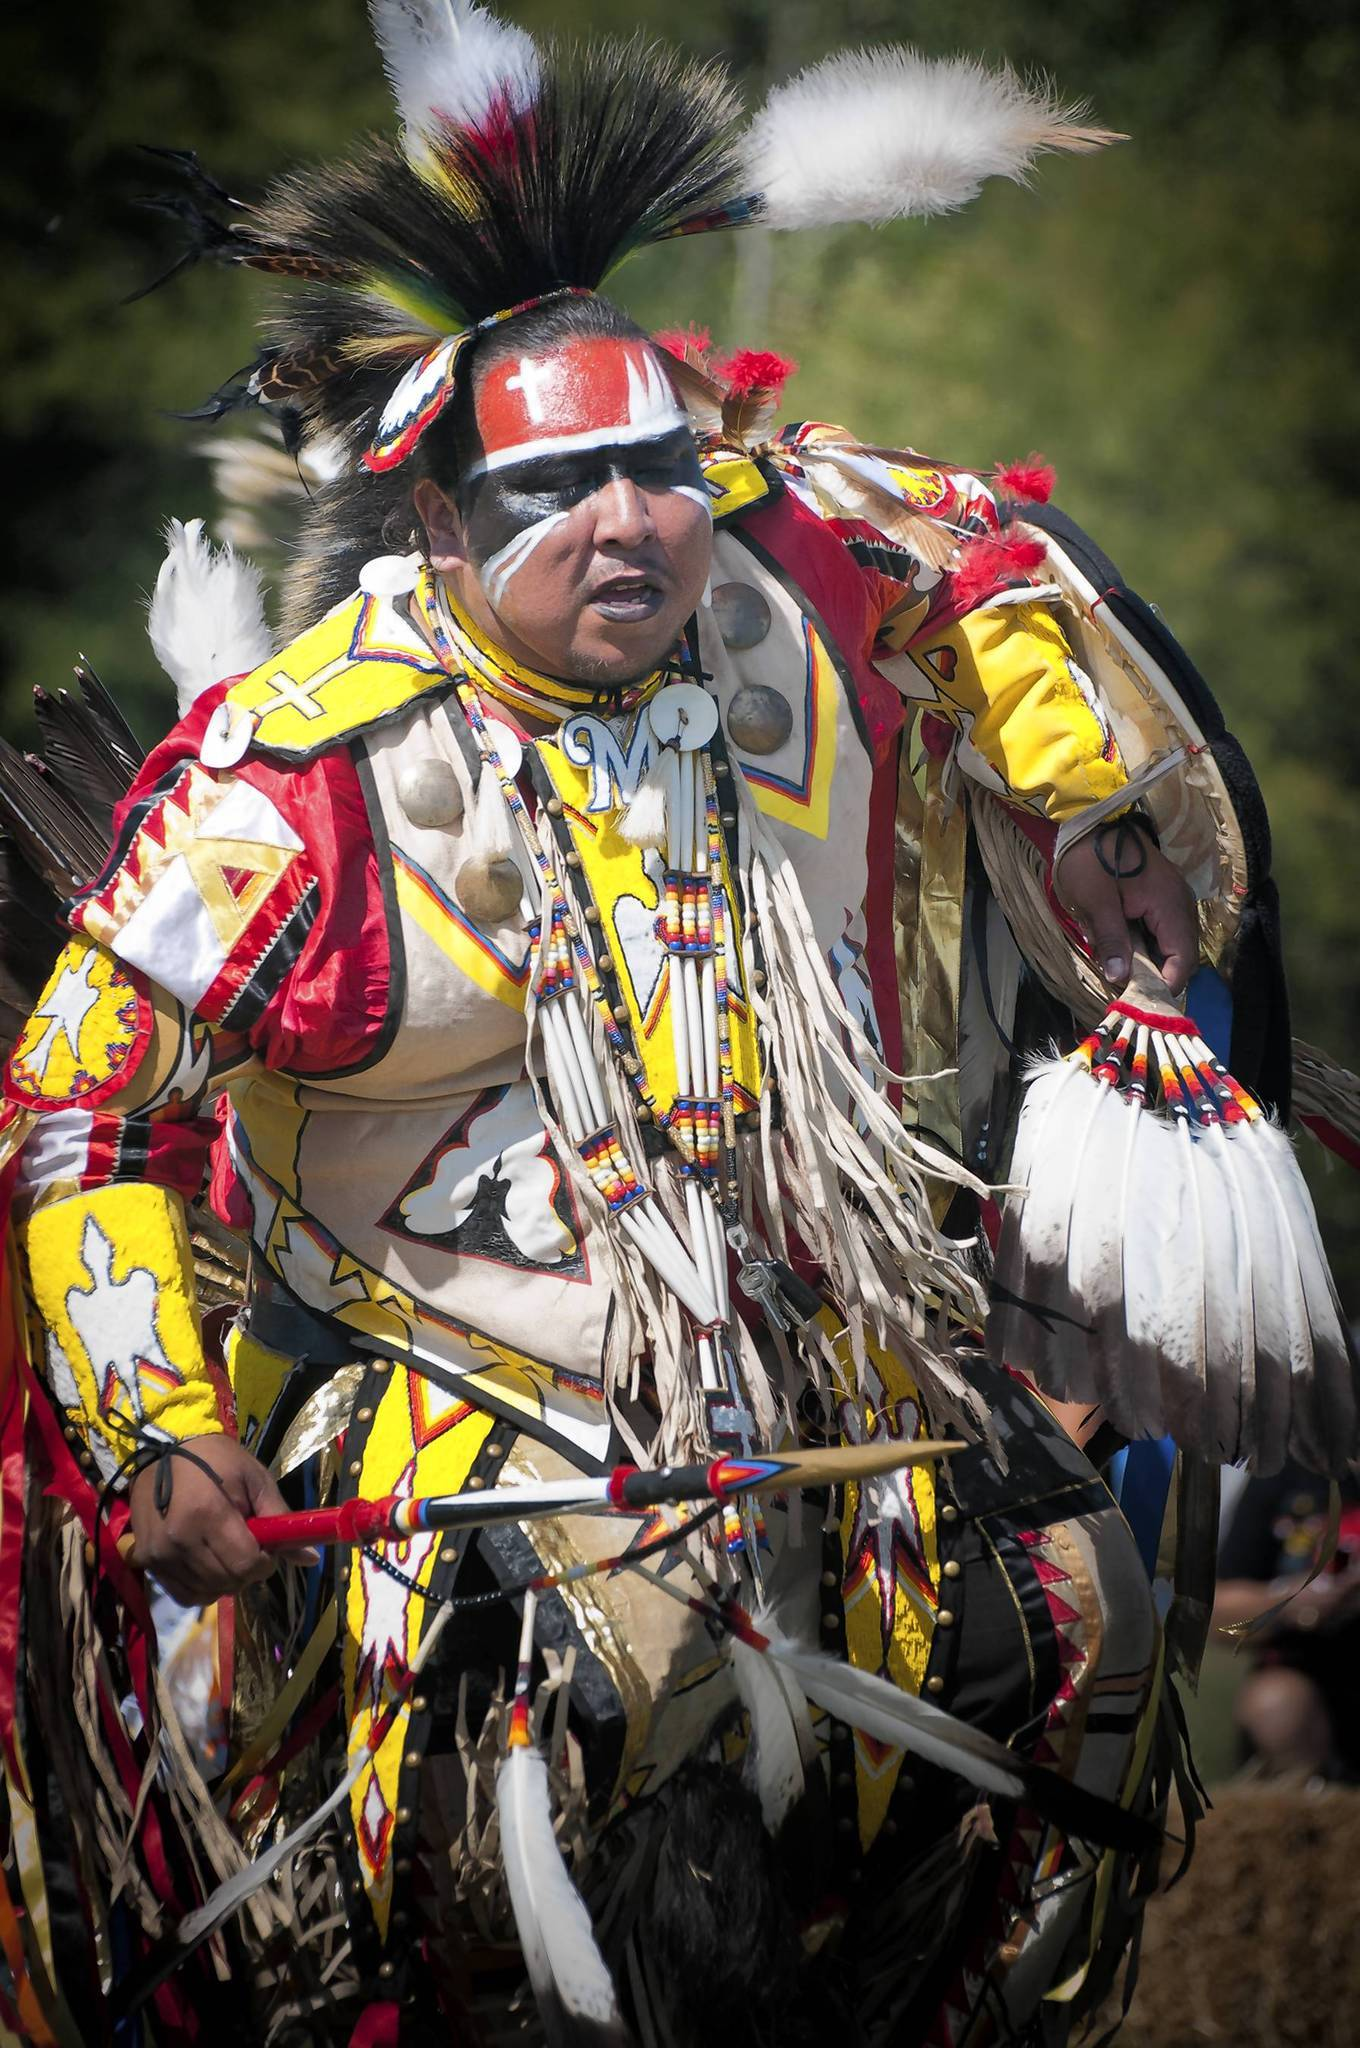 At American Indian Center's 60th Powwow, both ritual and dance contest